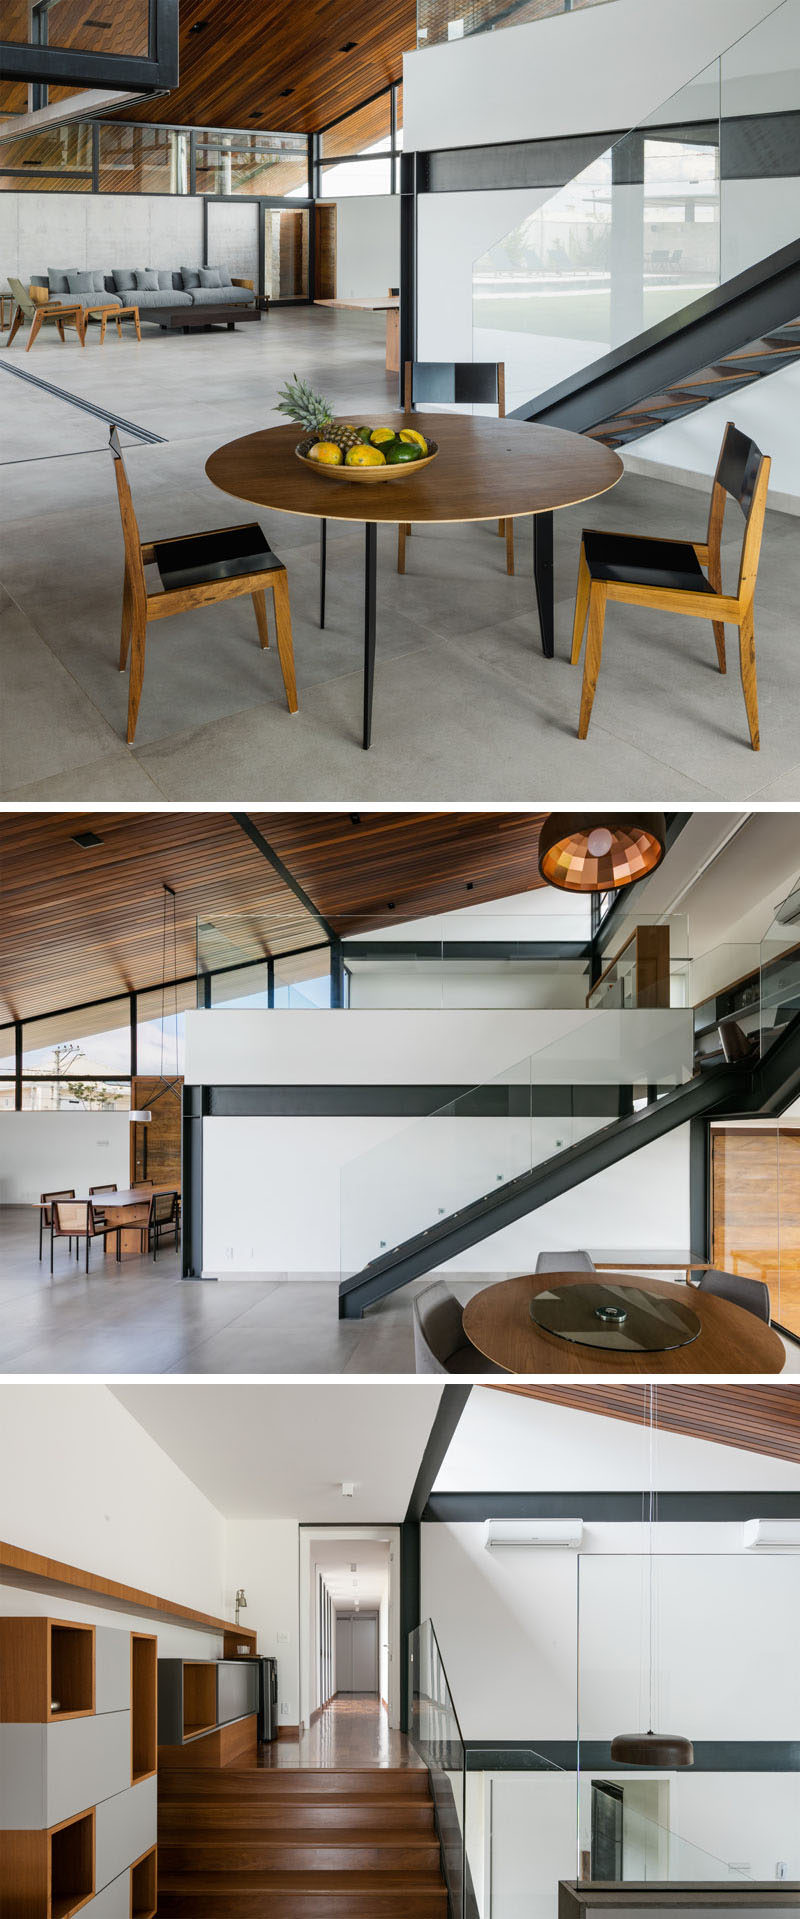 Metal and wood stairs lead to the second floor of this modern house. A glass handrail almost blends into the background. #ModernStairs #SteelStairs #GlassHandrail